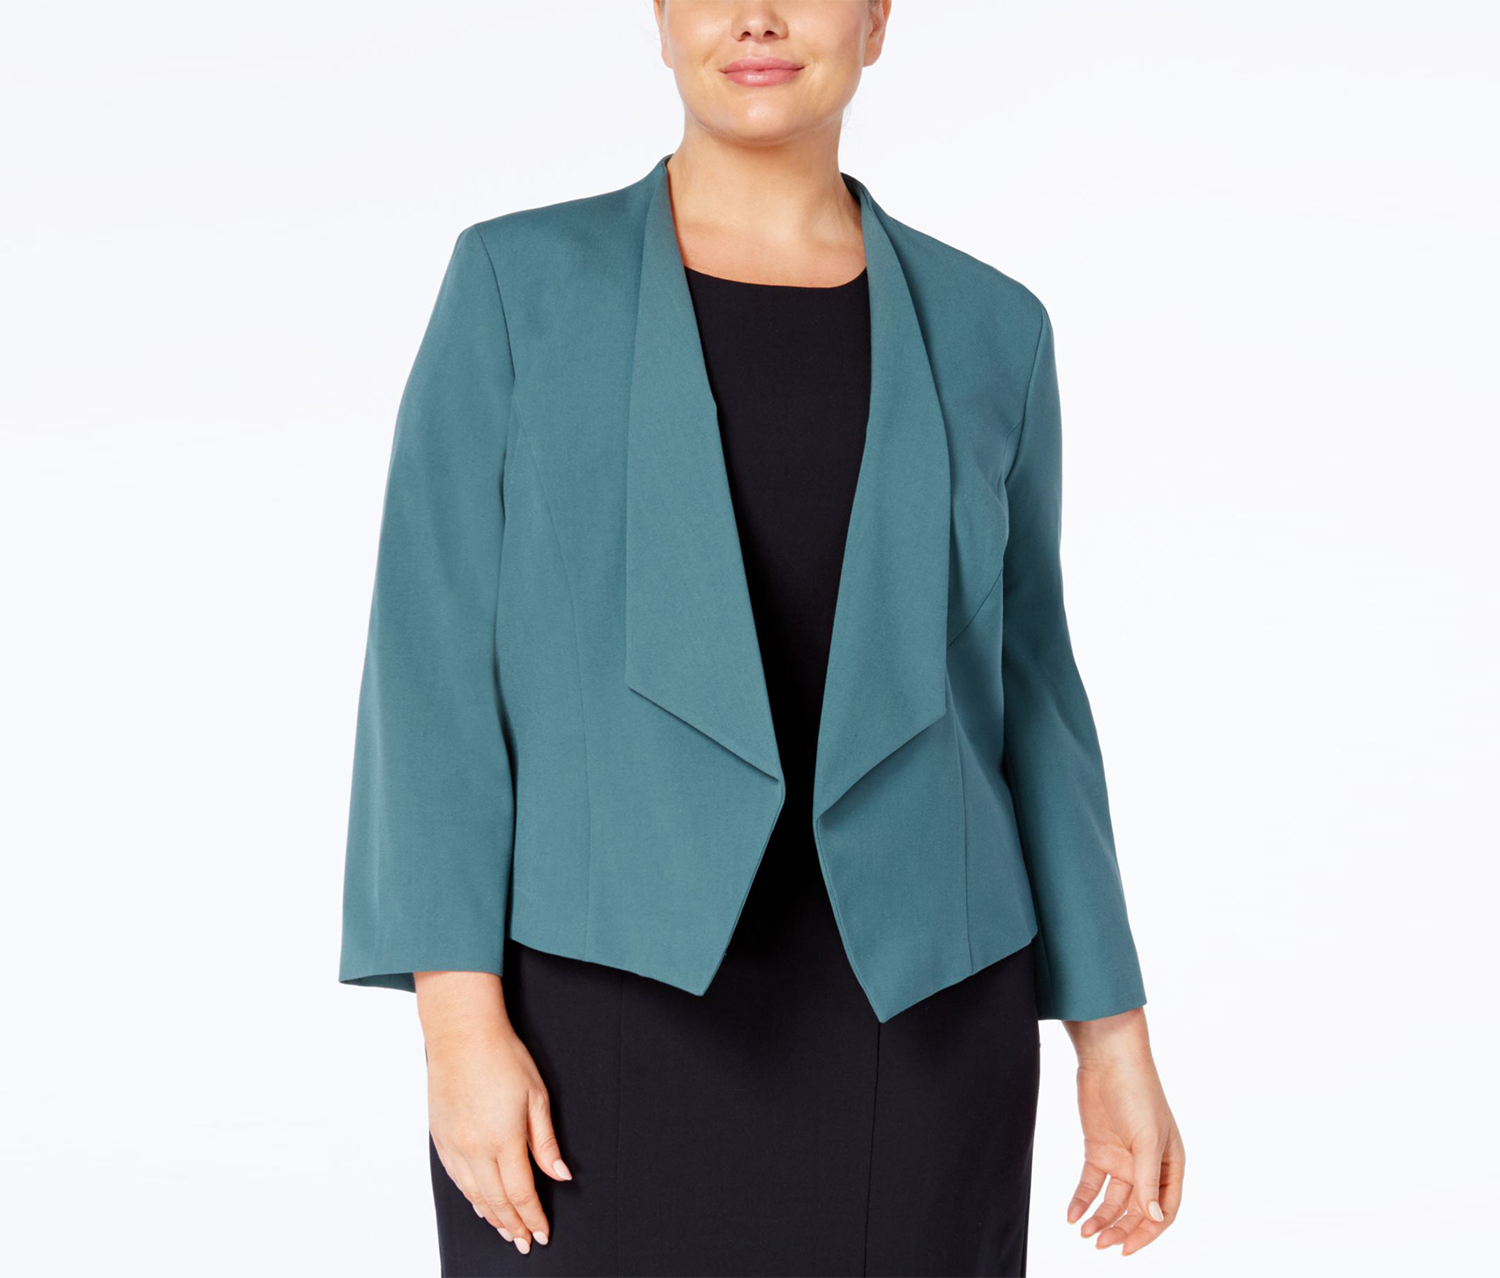 Nine West Women's Open-front Blazer, Patina